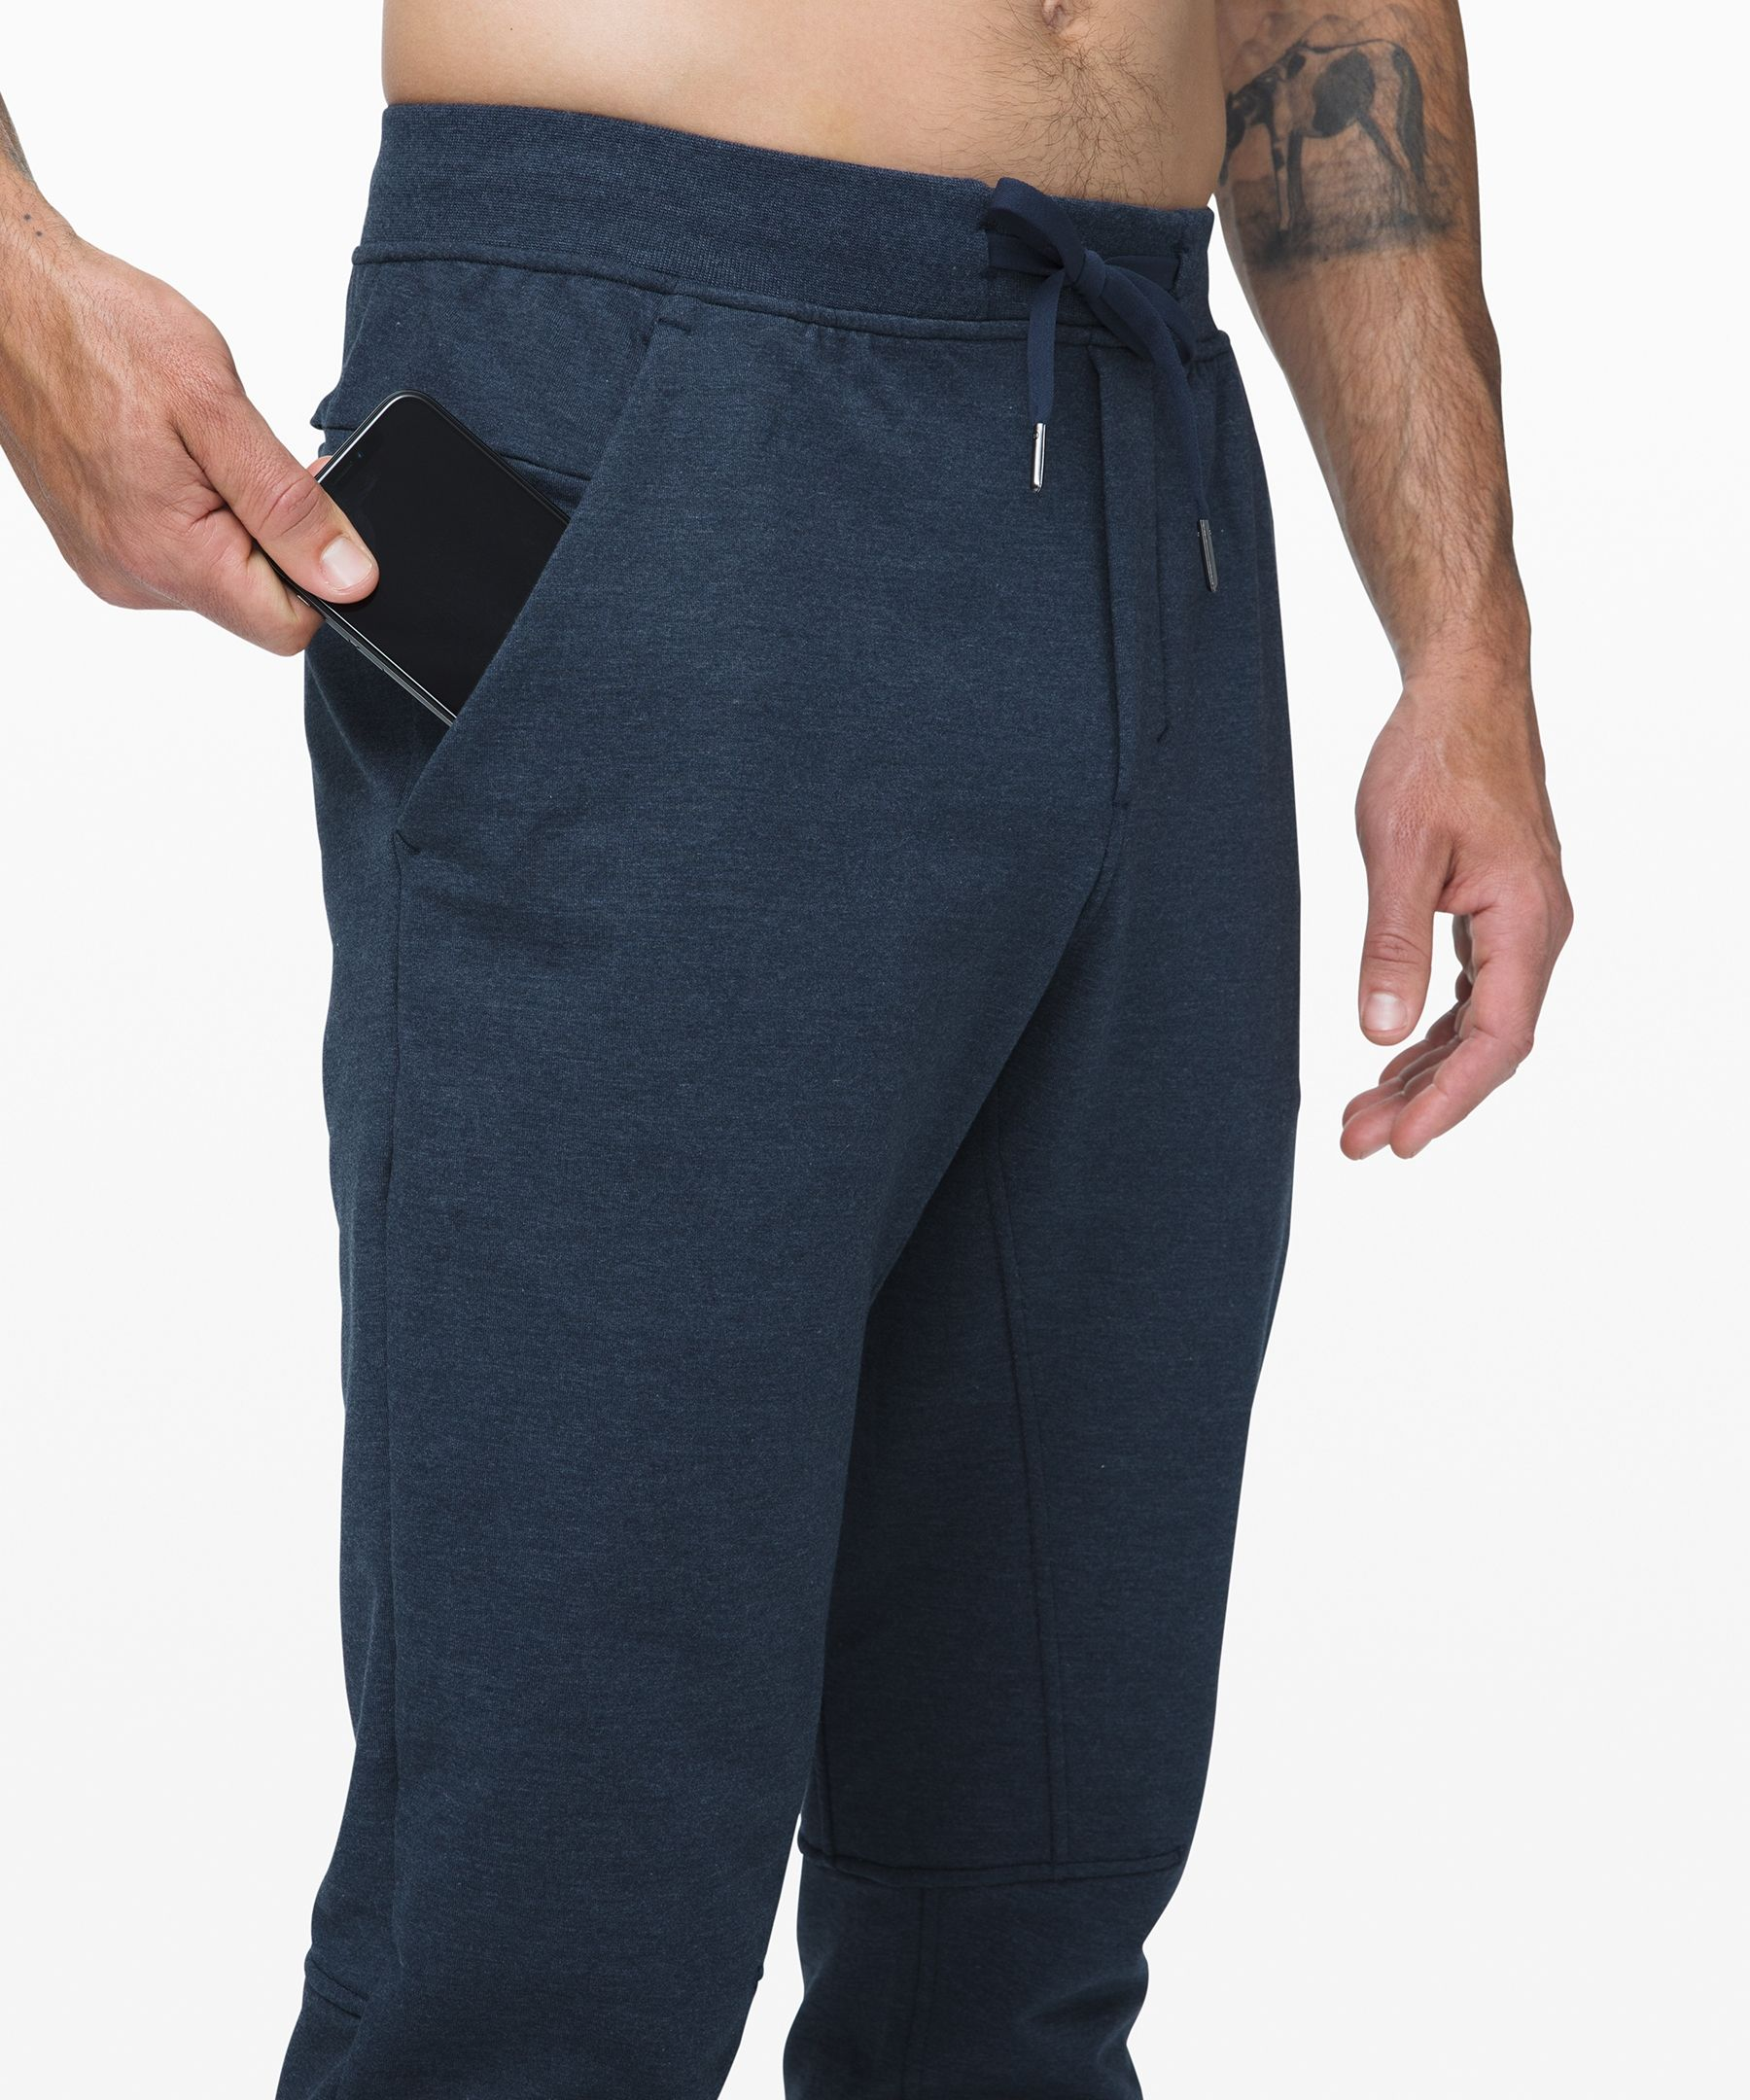 City Sweat Jogger Tall Men S Pants Lululemon Sweat Joggers Mens Pants Lululemon Men